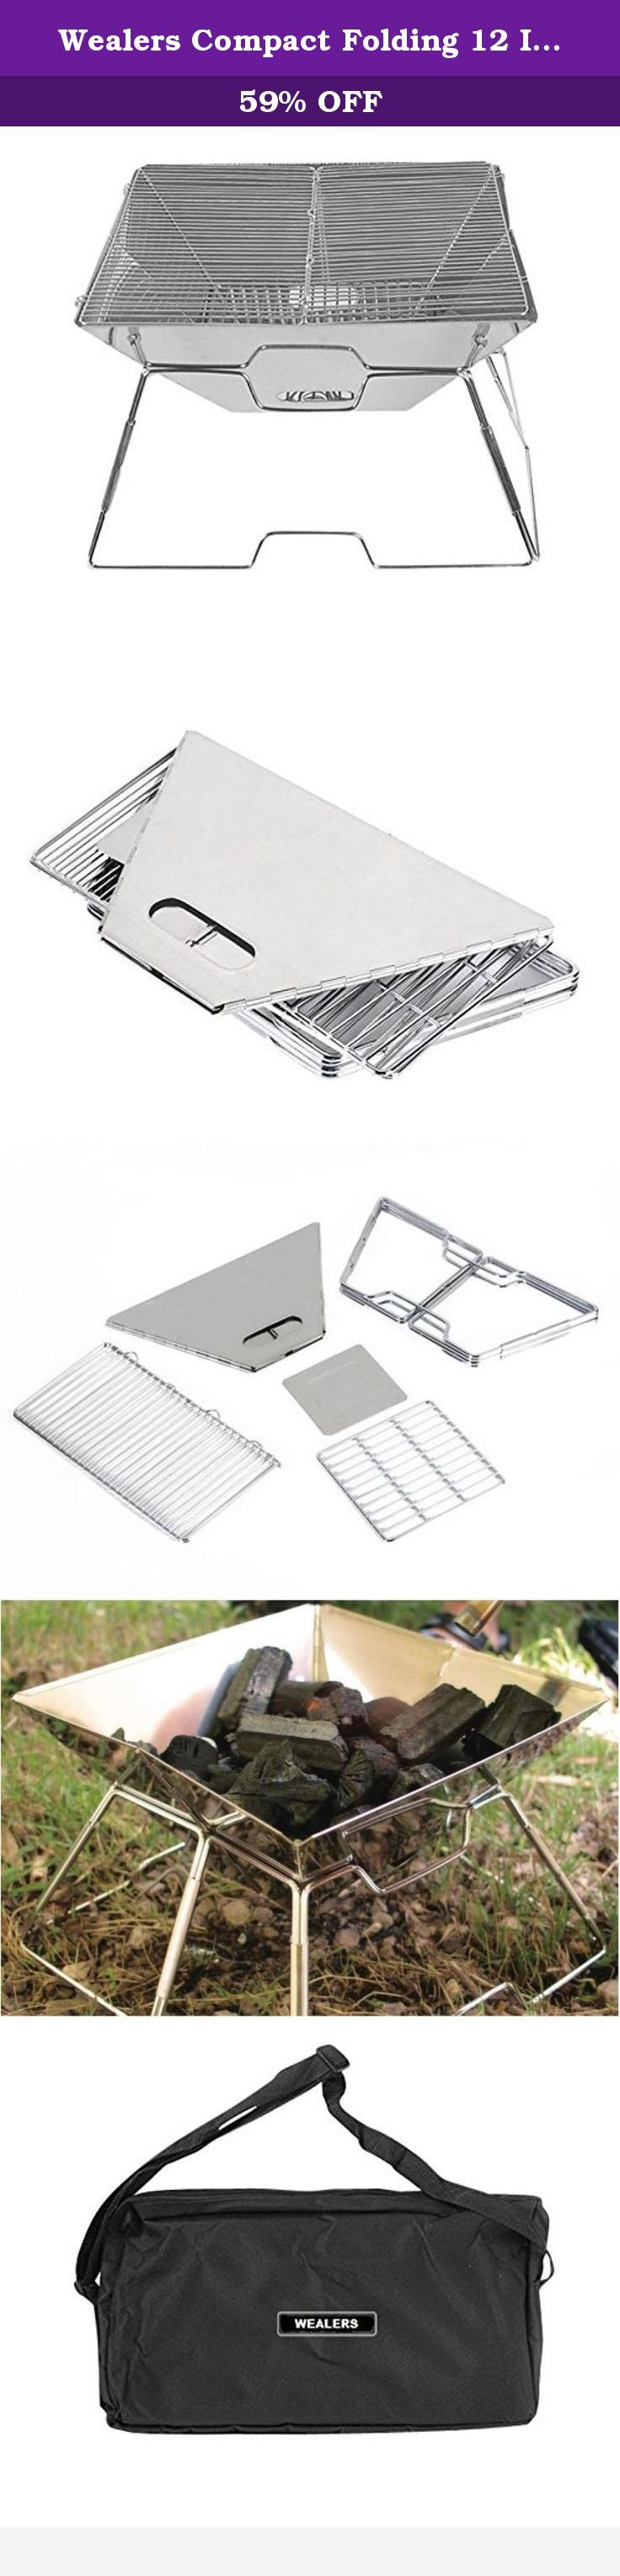 Wealers Compact Folding 12 Inch Charcoal BBQ Grill Made From Stainless Steel. Portable and Great for Camping, Picnics, Backpacking, Backyards, Survival, Emergency Preparation. The WEALERSTM folding grill set is a great way to take grilling with you wherever you go. Whether it's on a camp out, at the RV park or in the backyard, your Quick Grill is a fun and easy way to enjoy a meal with friends and family. The highly compact design allows the Grill to be easily set up and easily folded up…